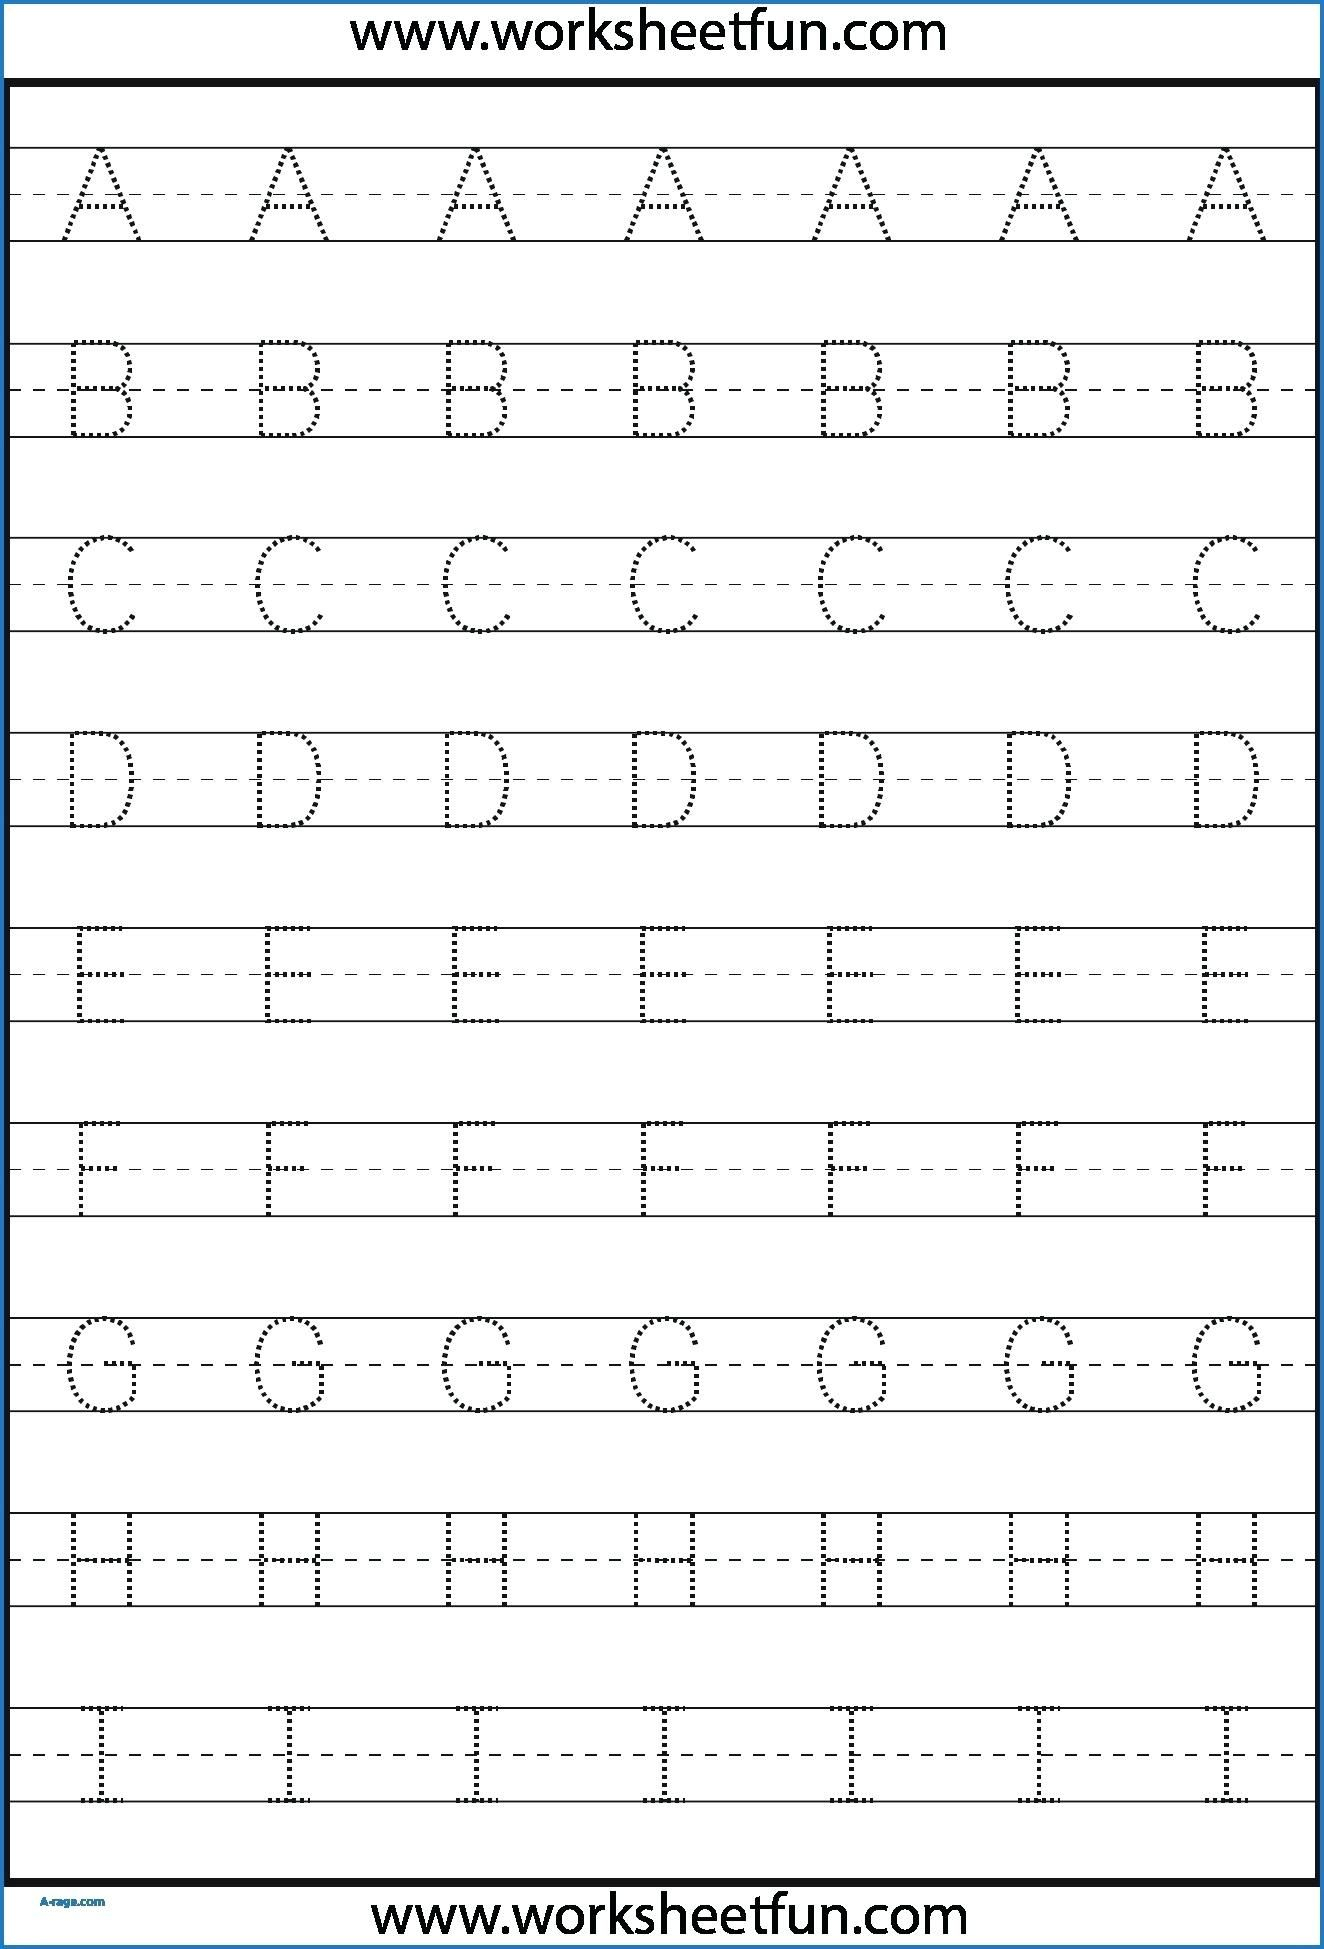 Kindergarten Letter Tracing Worksheets Pdf - Wallpaper Image in Urdu Letters Tracing Worksheets Pdf